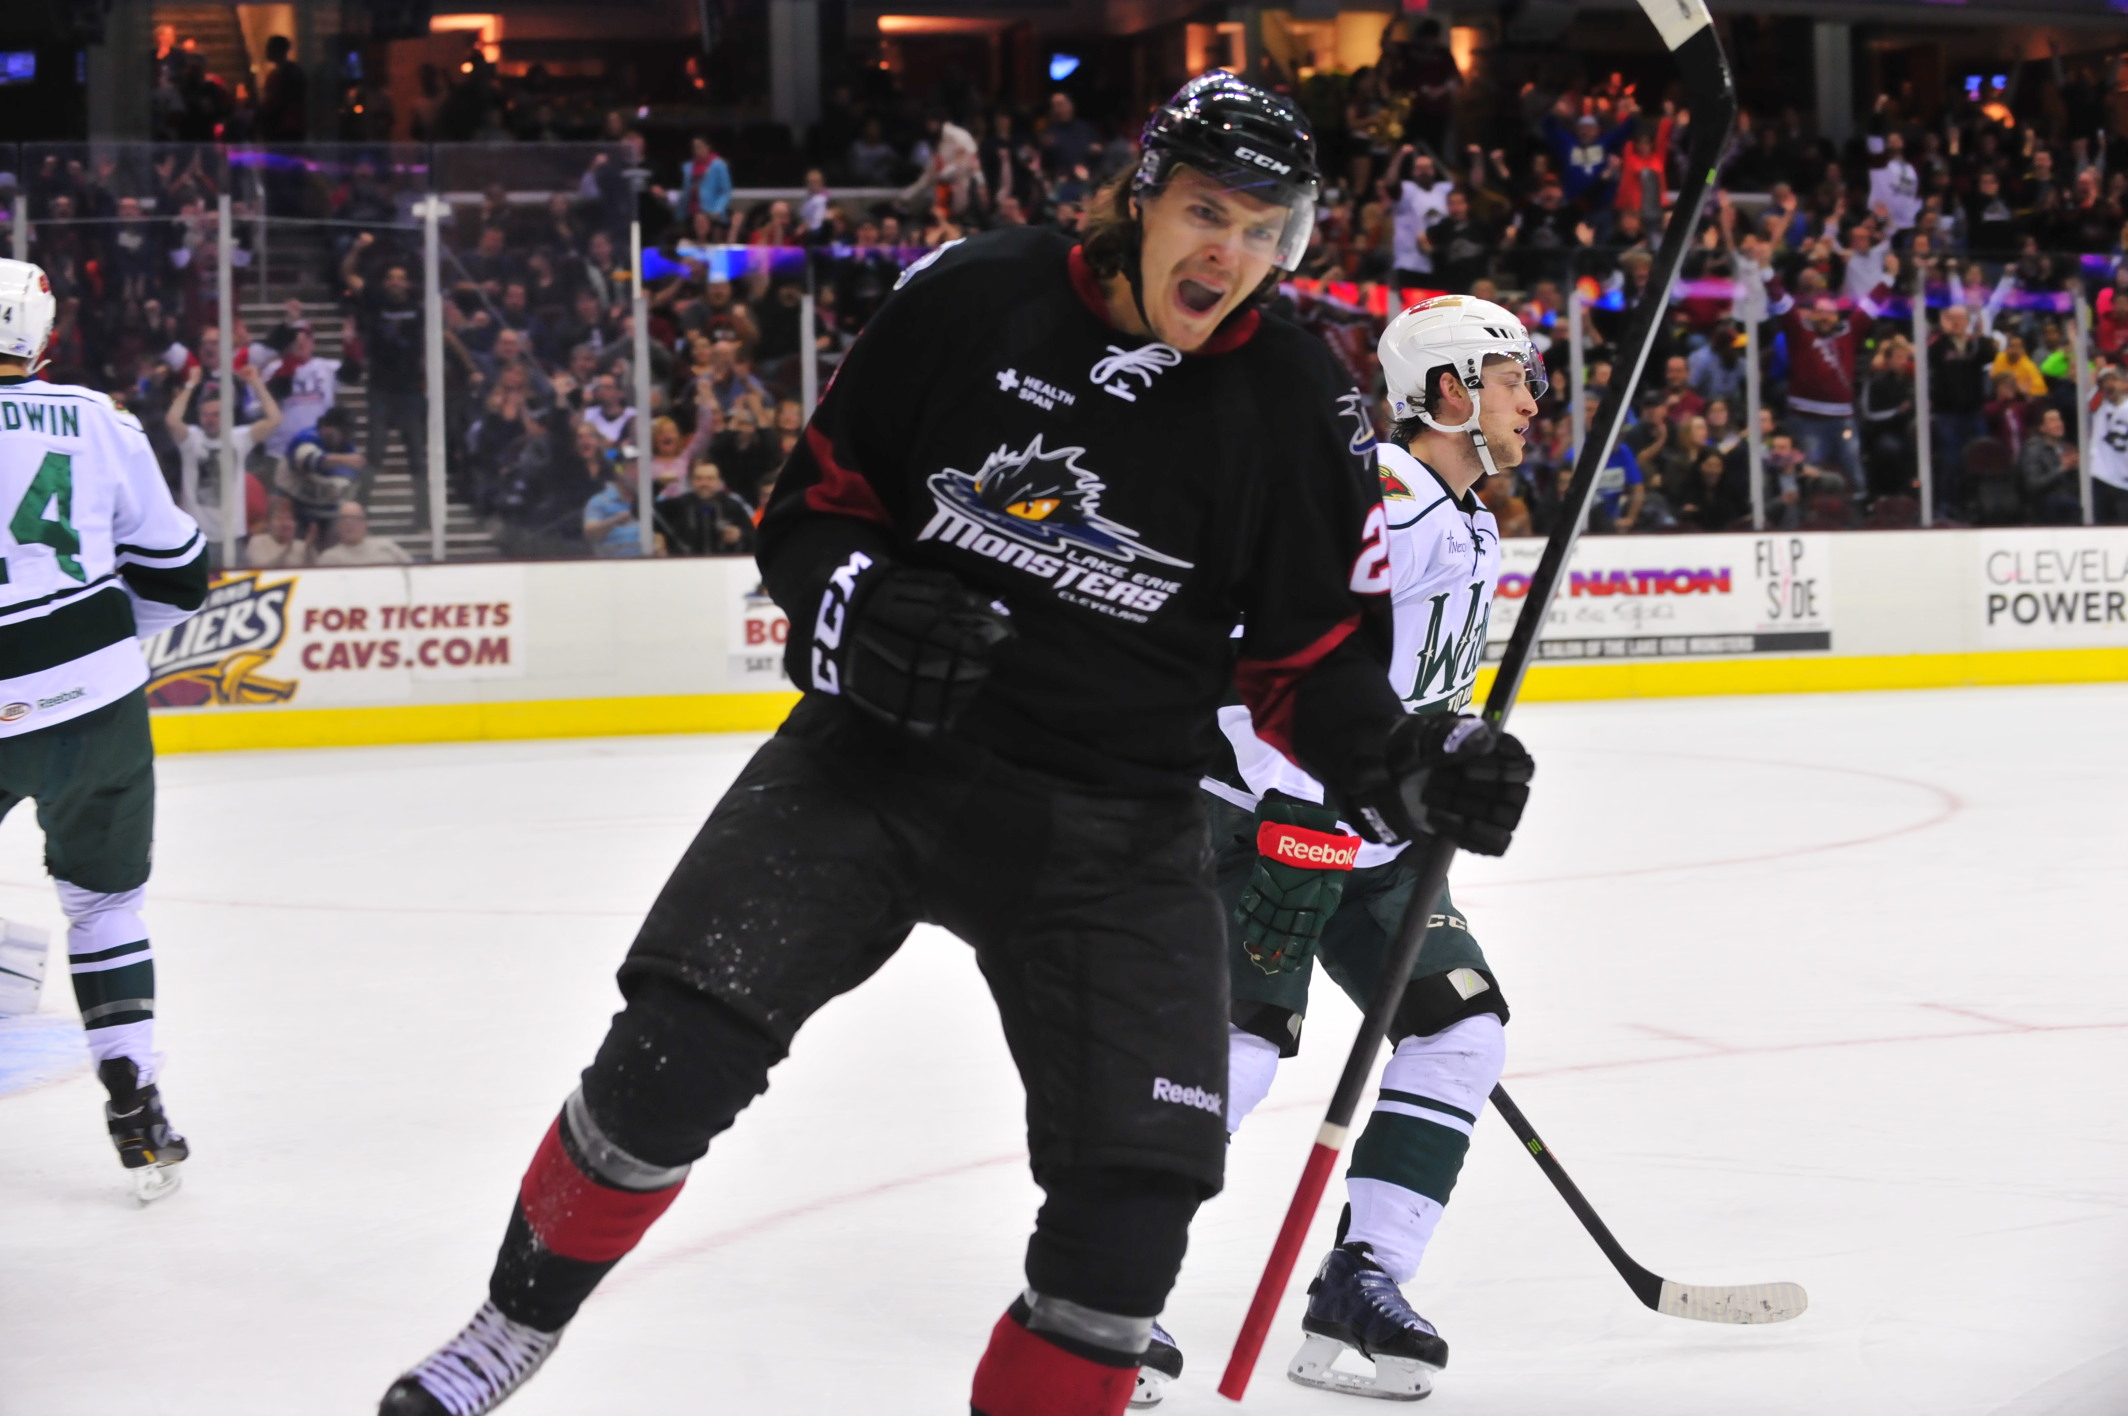 photo courtesy of the Lake Erie Monsters